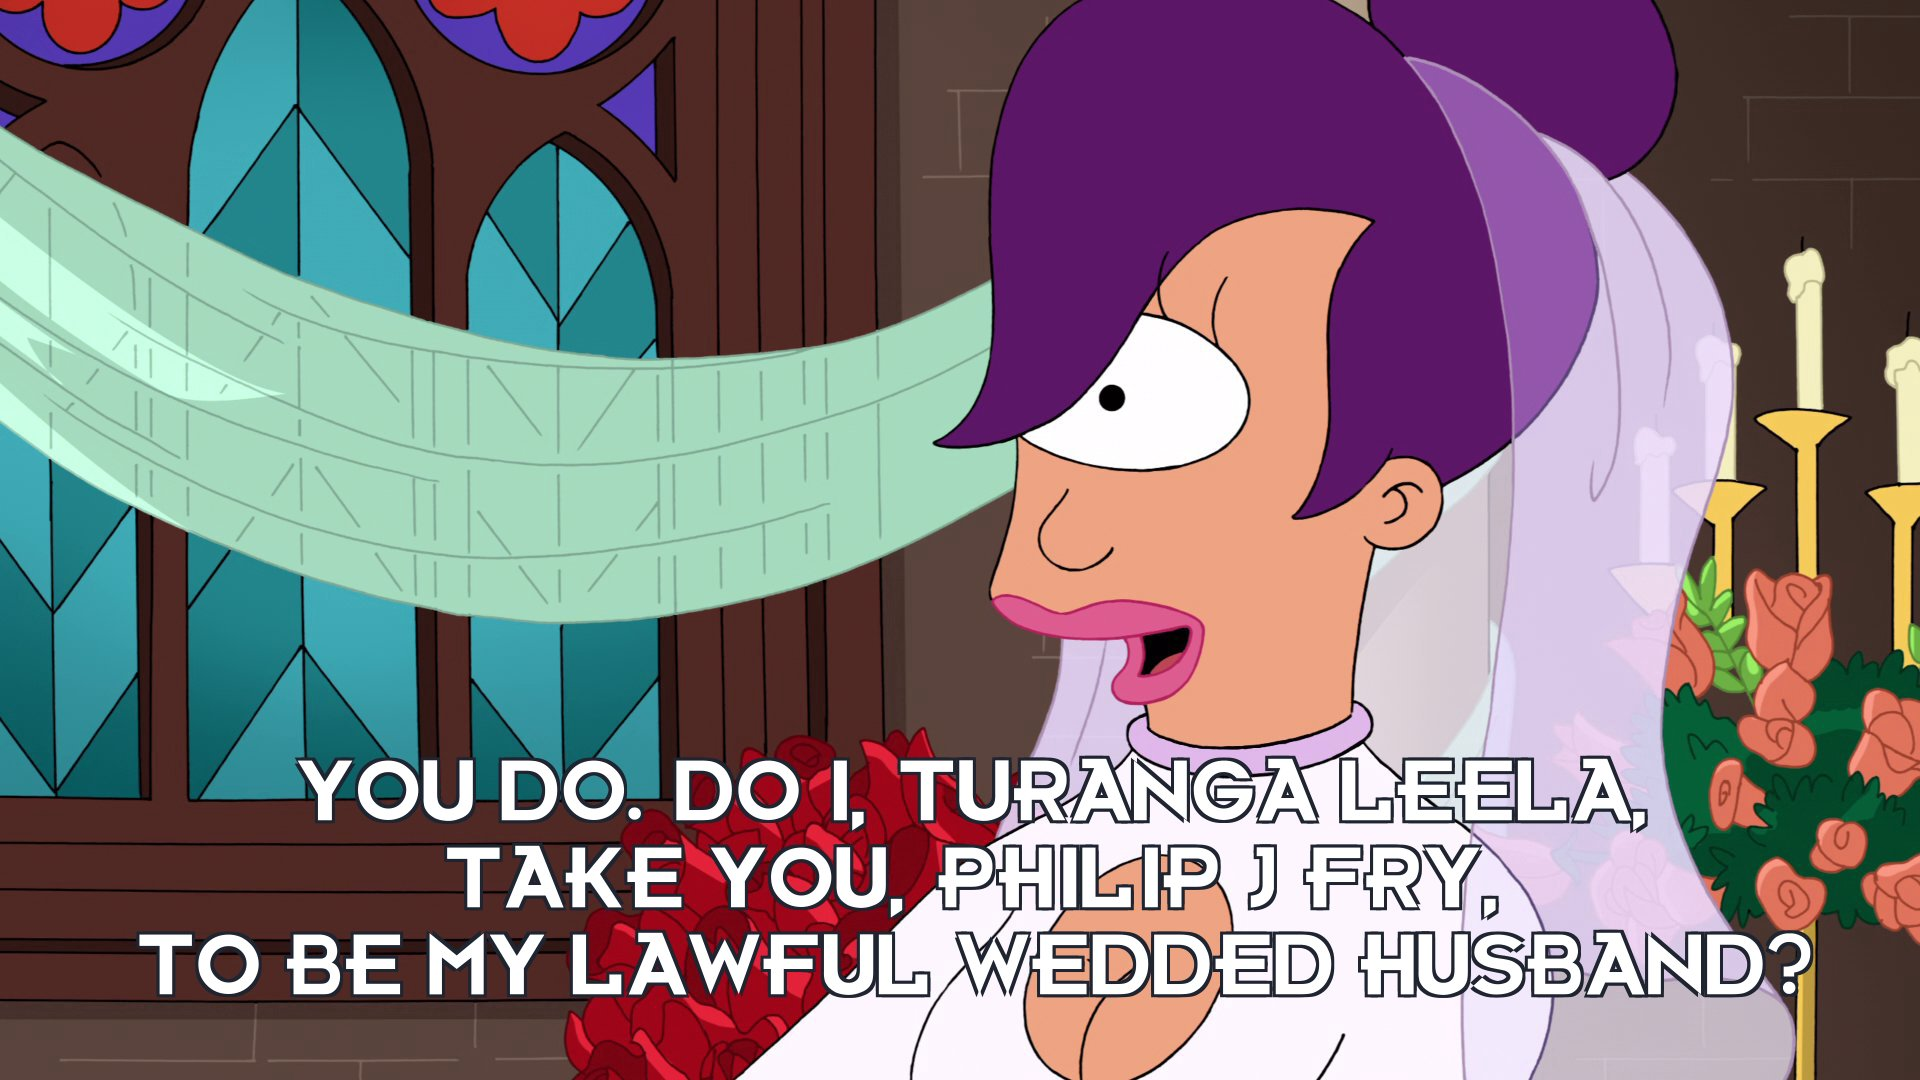 Turanga Leela: You do. Do I, Turanga Leela, take you, Philip J Fry, to be my lawful wedded husband?